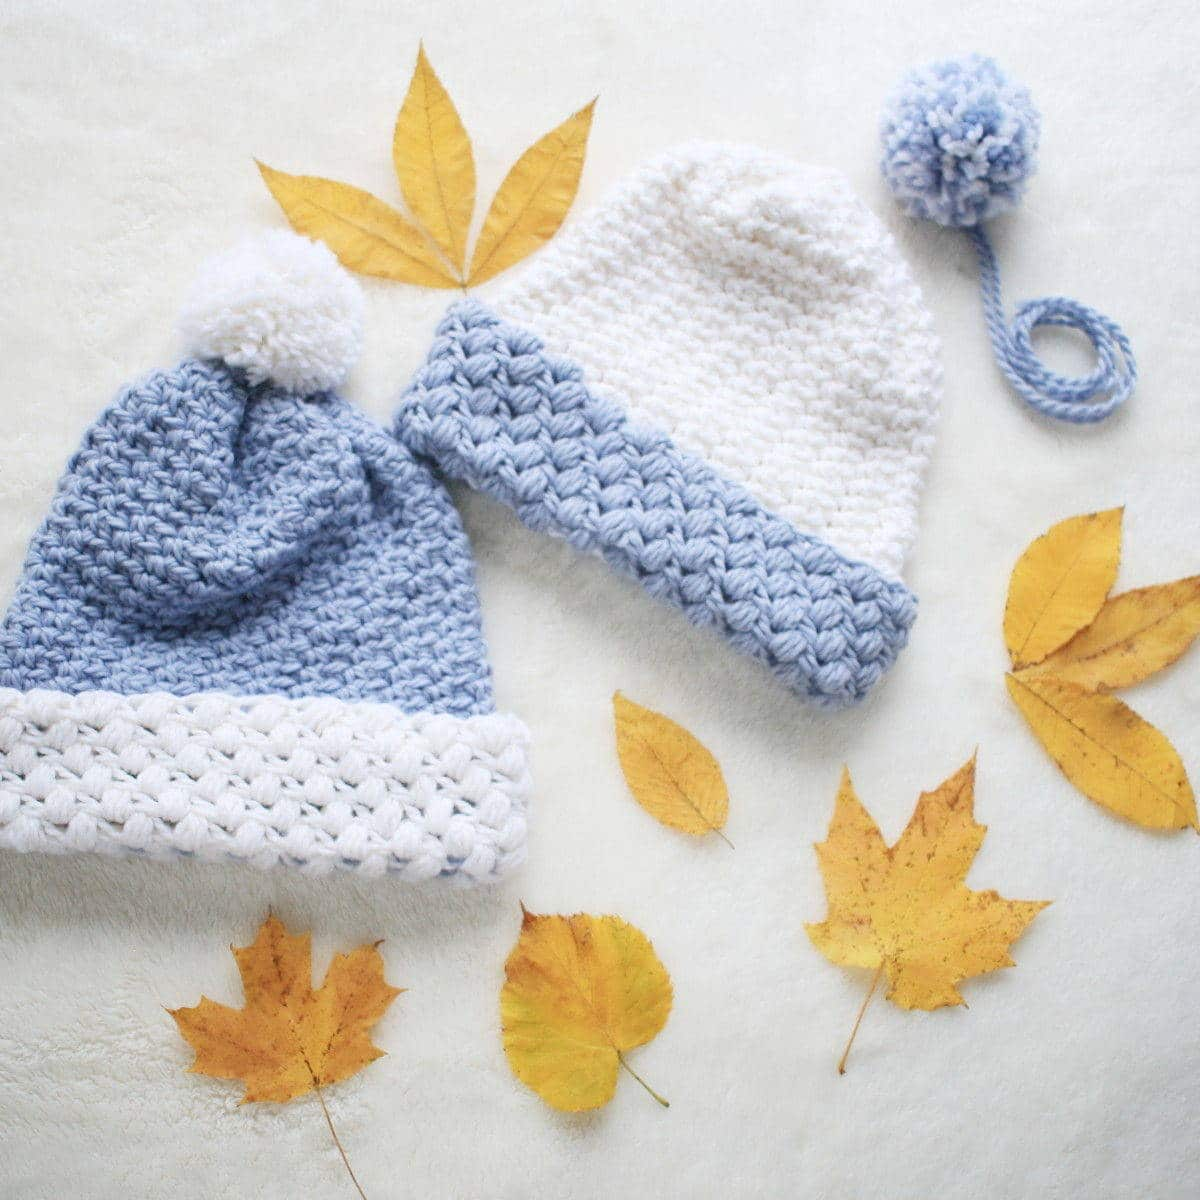 Gathered Buds crochet hats. Pom poms are optional.